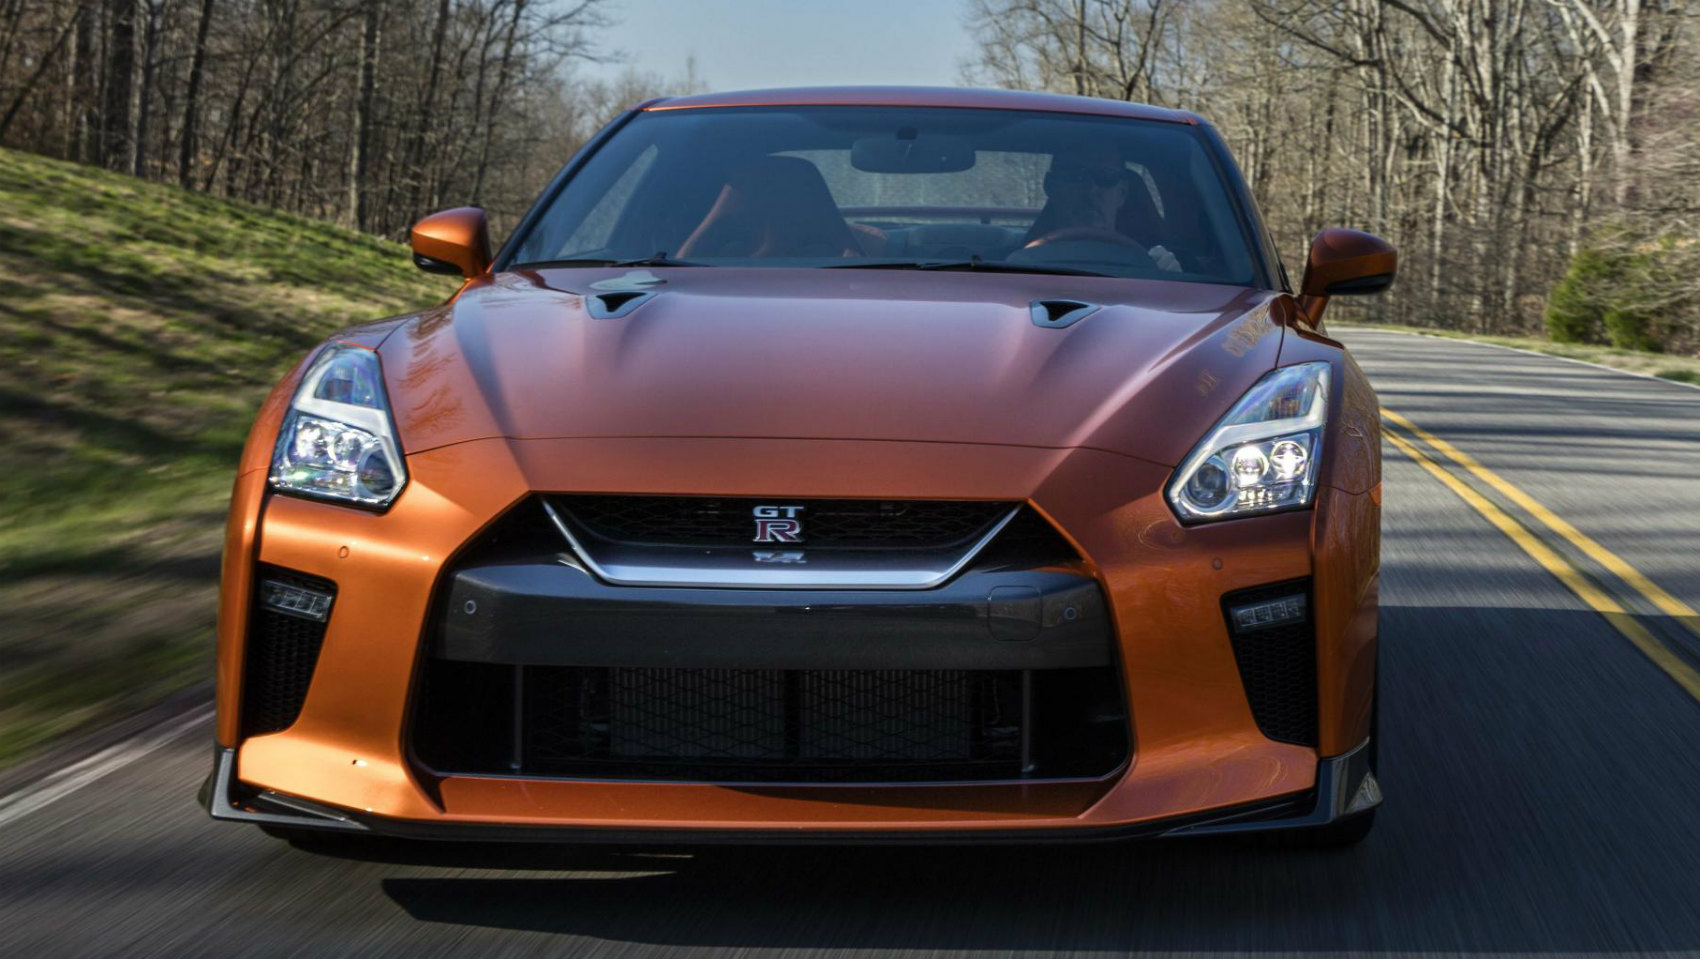 Nissan GT-R 2017 frontal